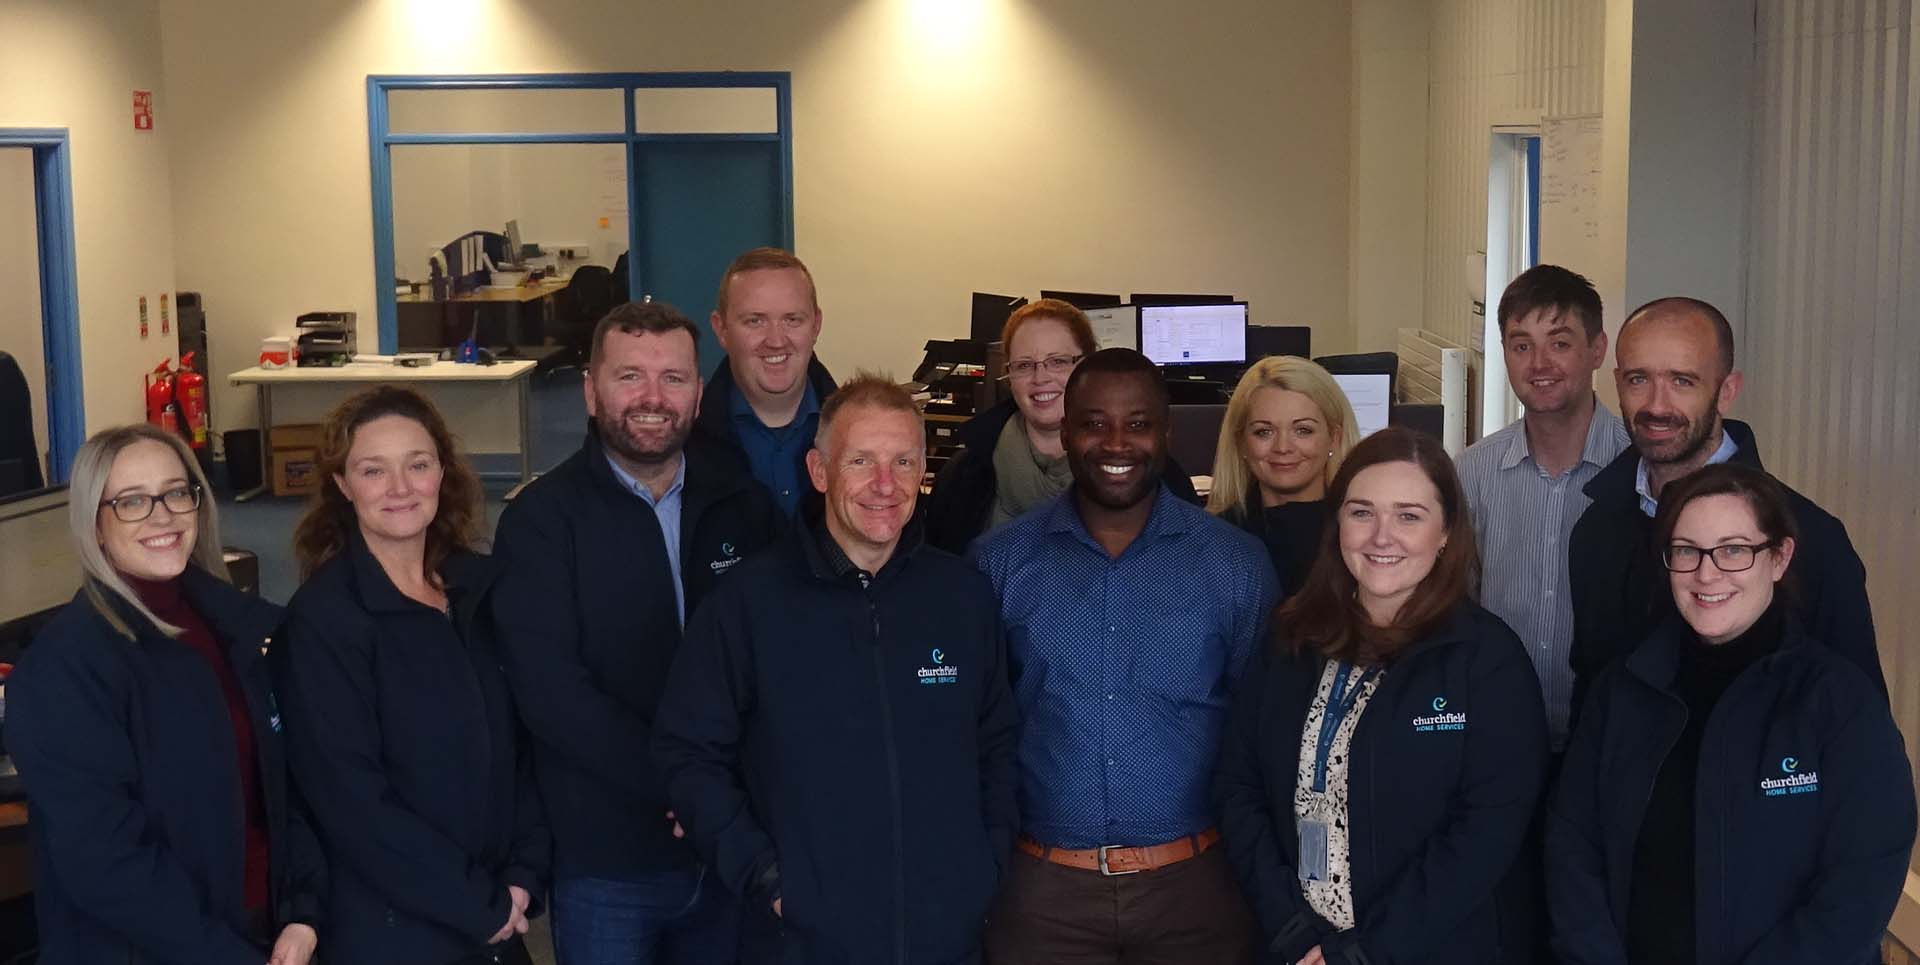 The Churchfield Home Services Customer Care team